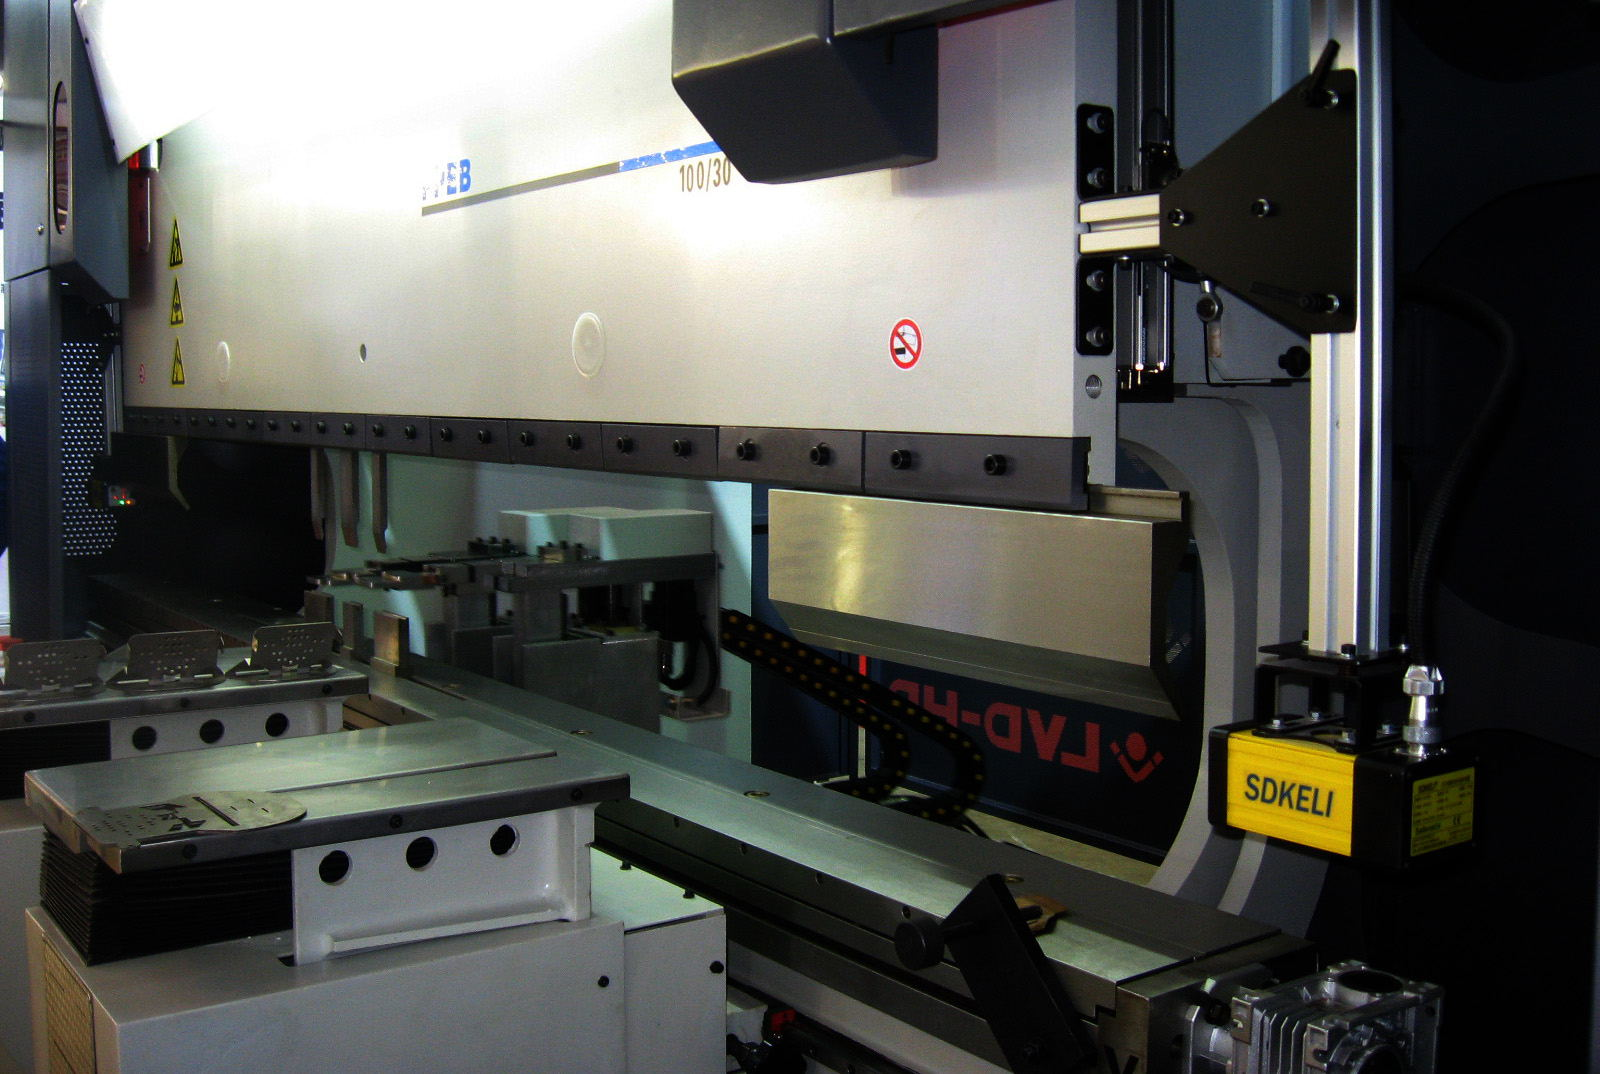 SDKELI BLPS laser safety protection device for press brake type 4 with CE certificate application2